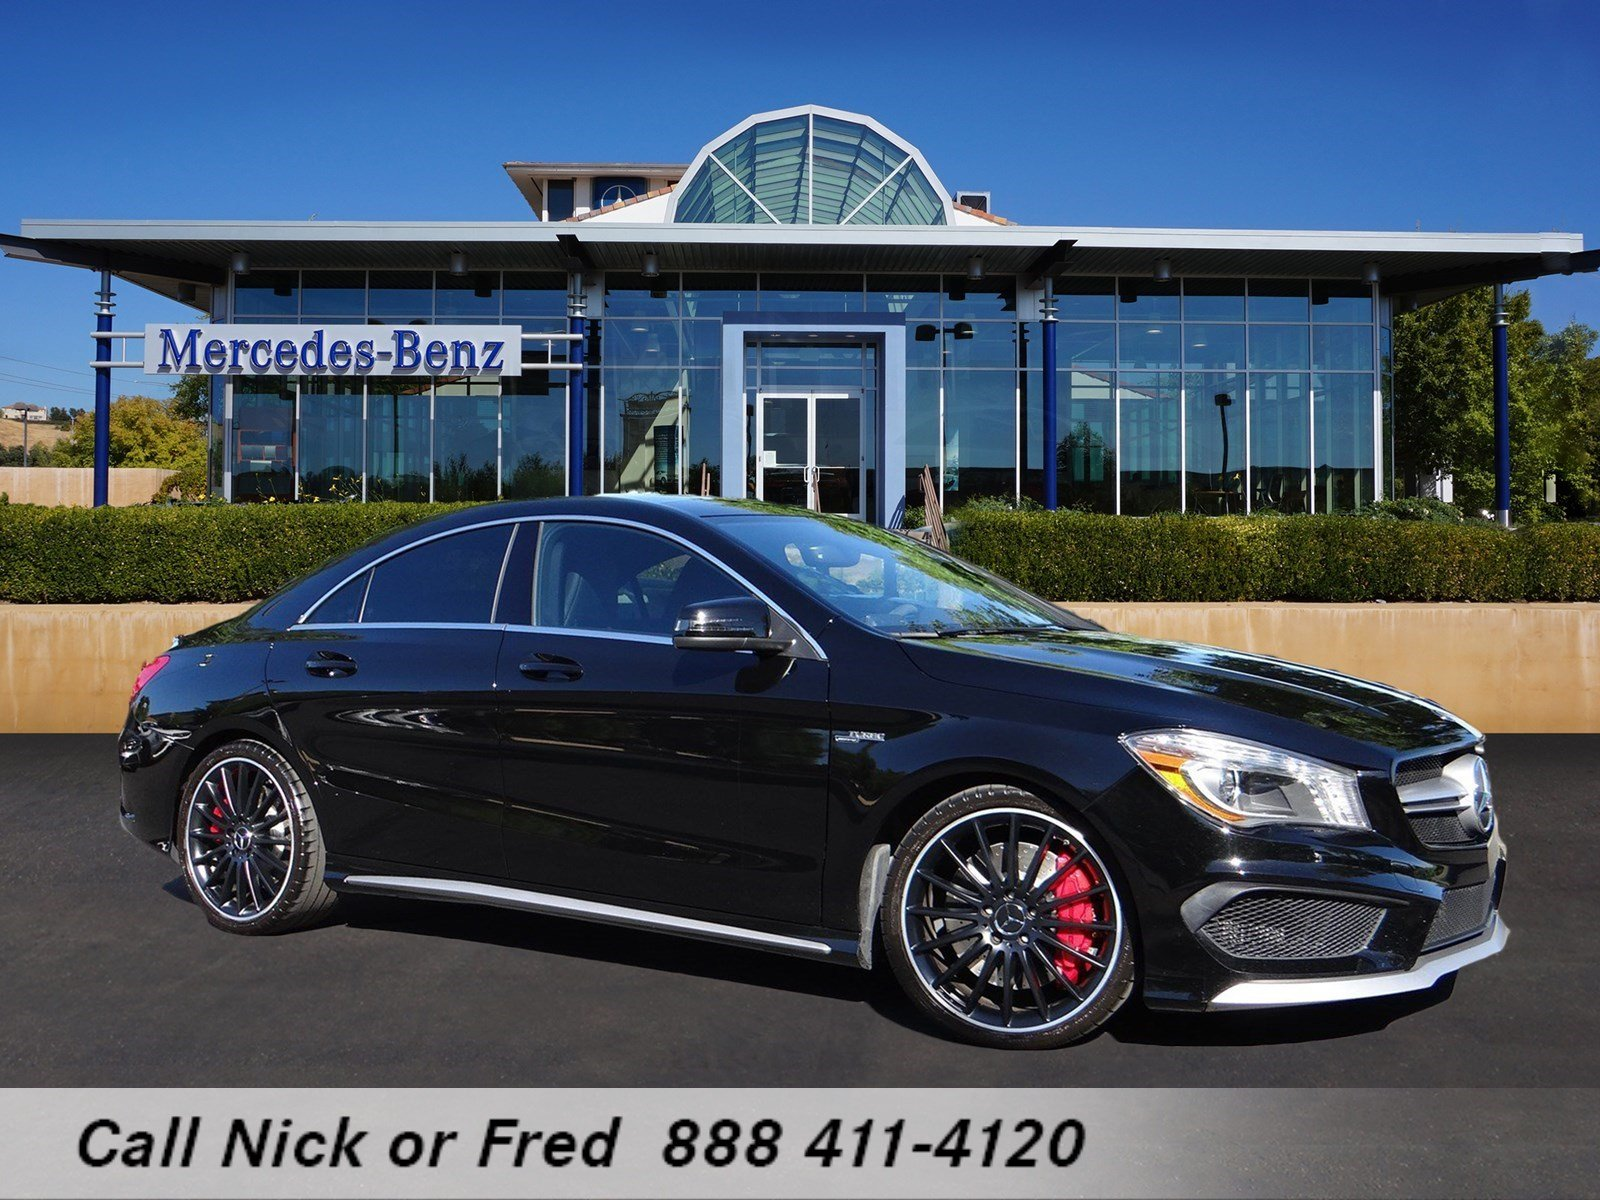 2014 mercedes cla 45 amg availability autos post for Mercedes benz of westmont inventory